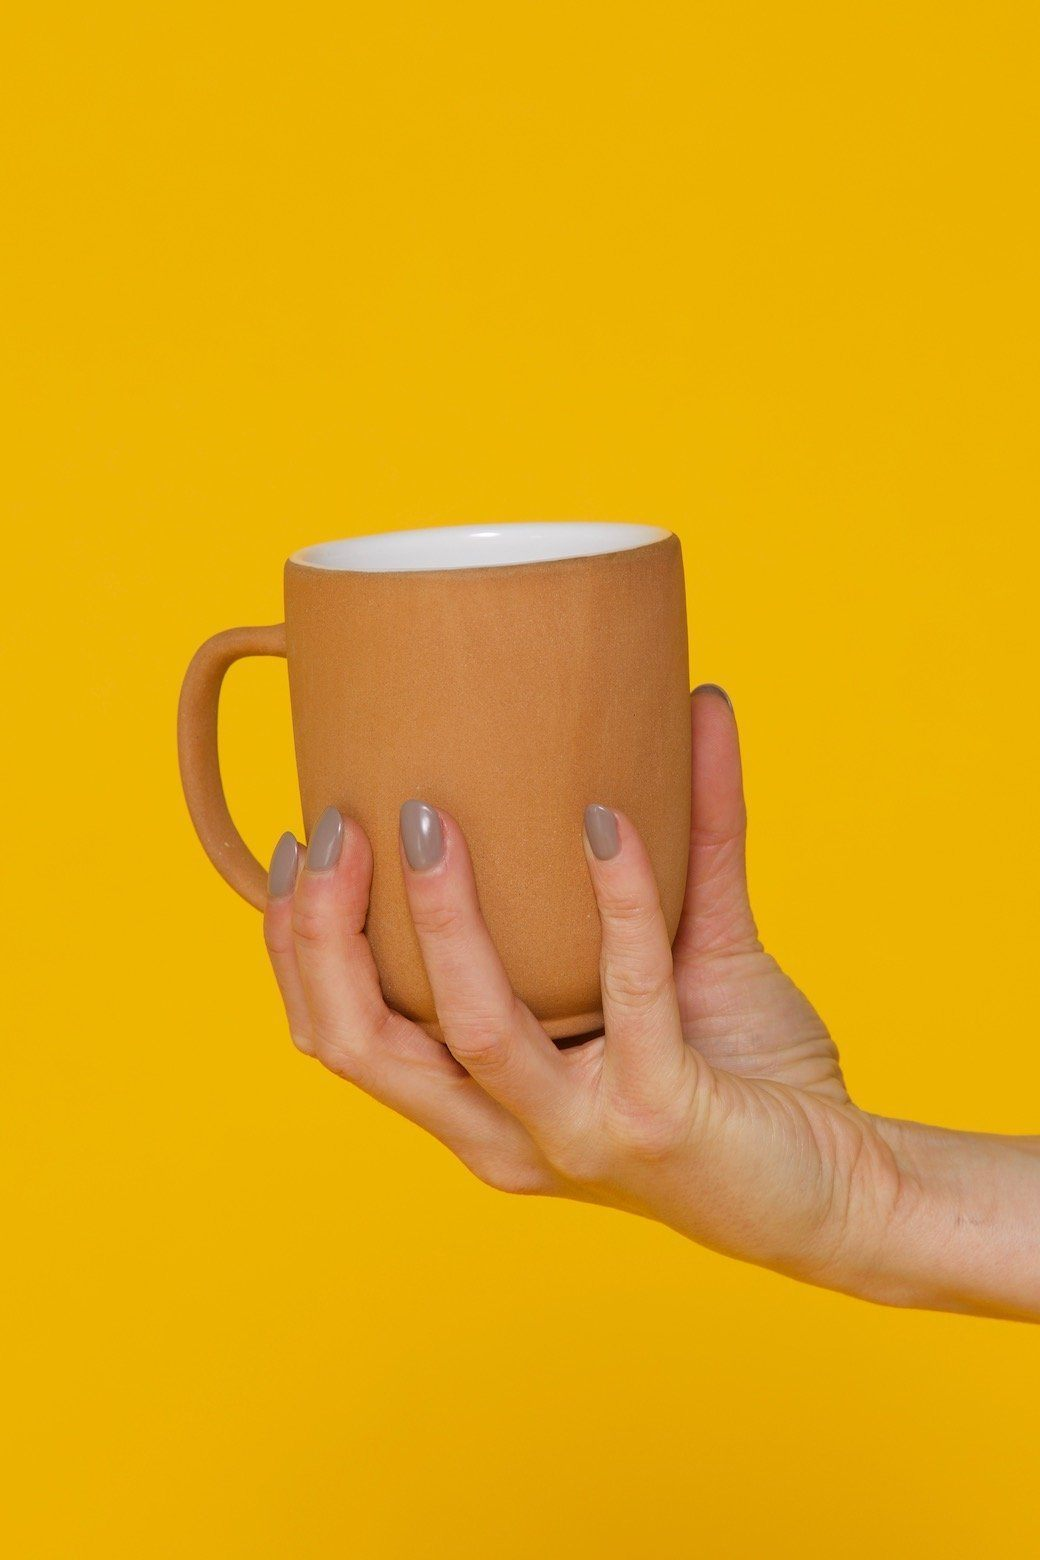 CDMX handmade mugs - sustainable holiday gifts for him